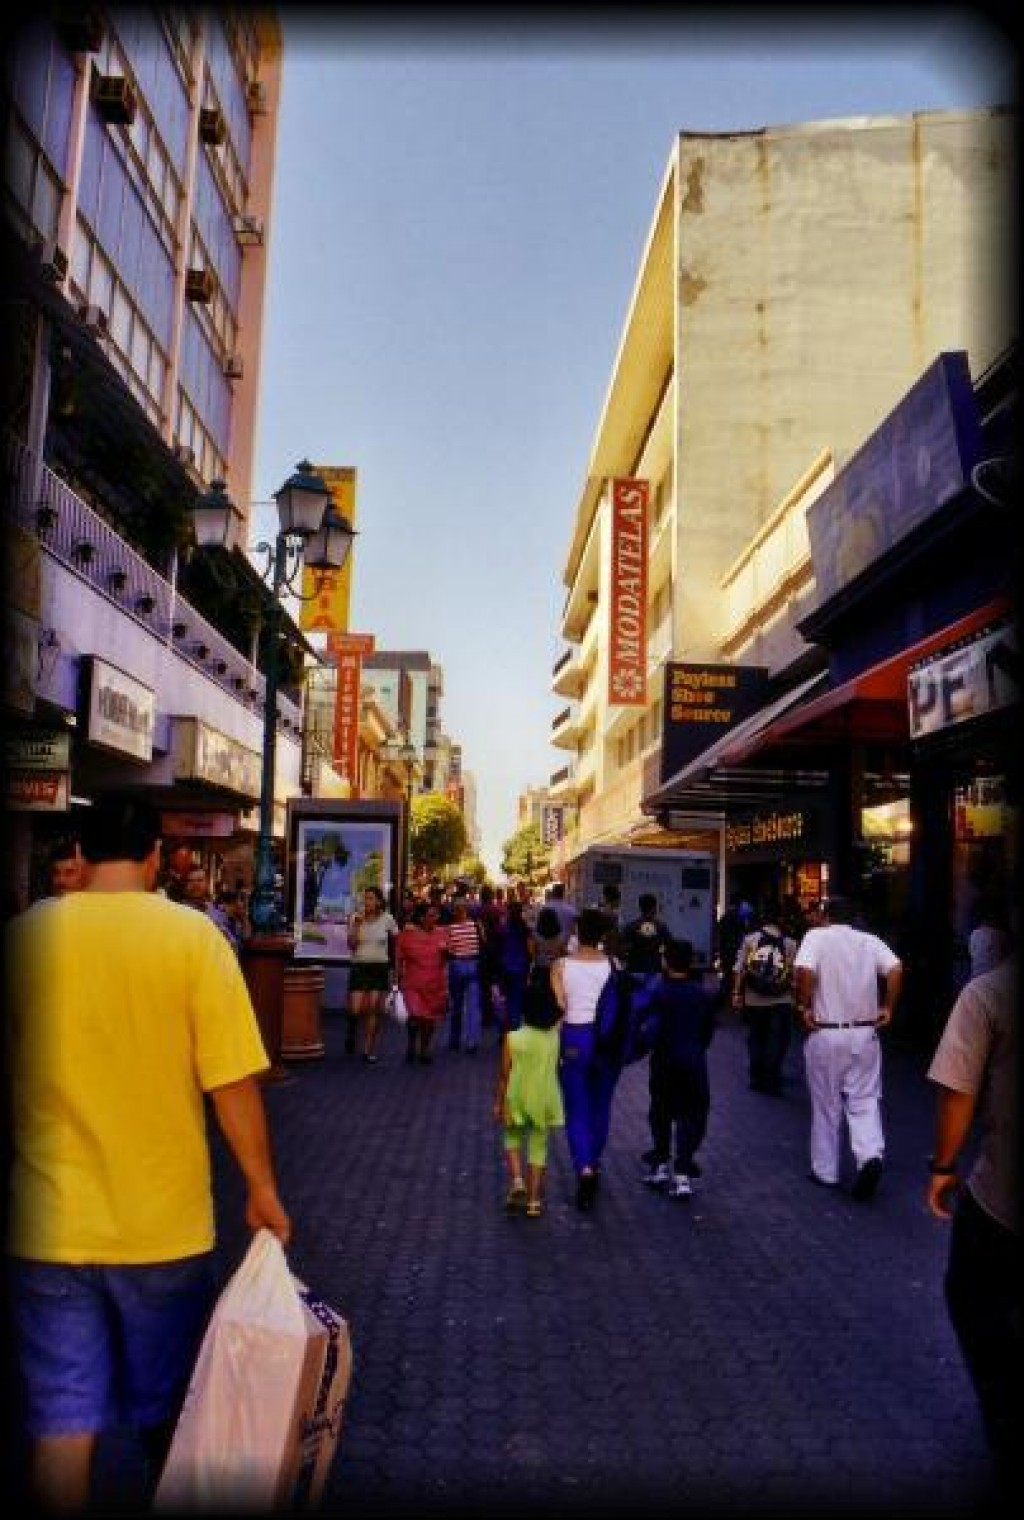 Back in San Jose, we went for a walk along Av. Central, the main shopping street.  American chains are everywhere.